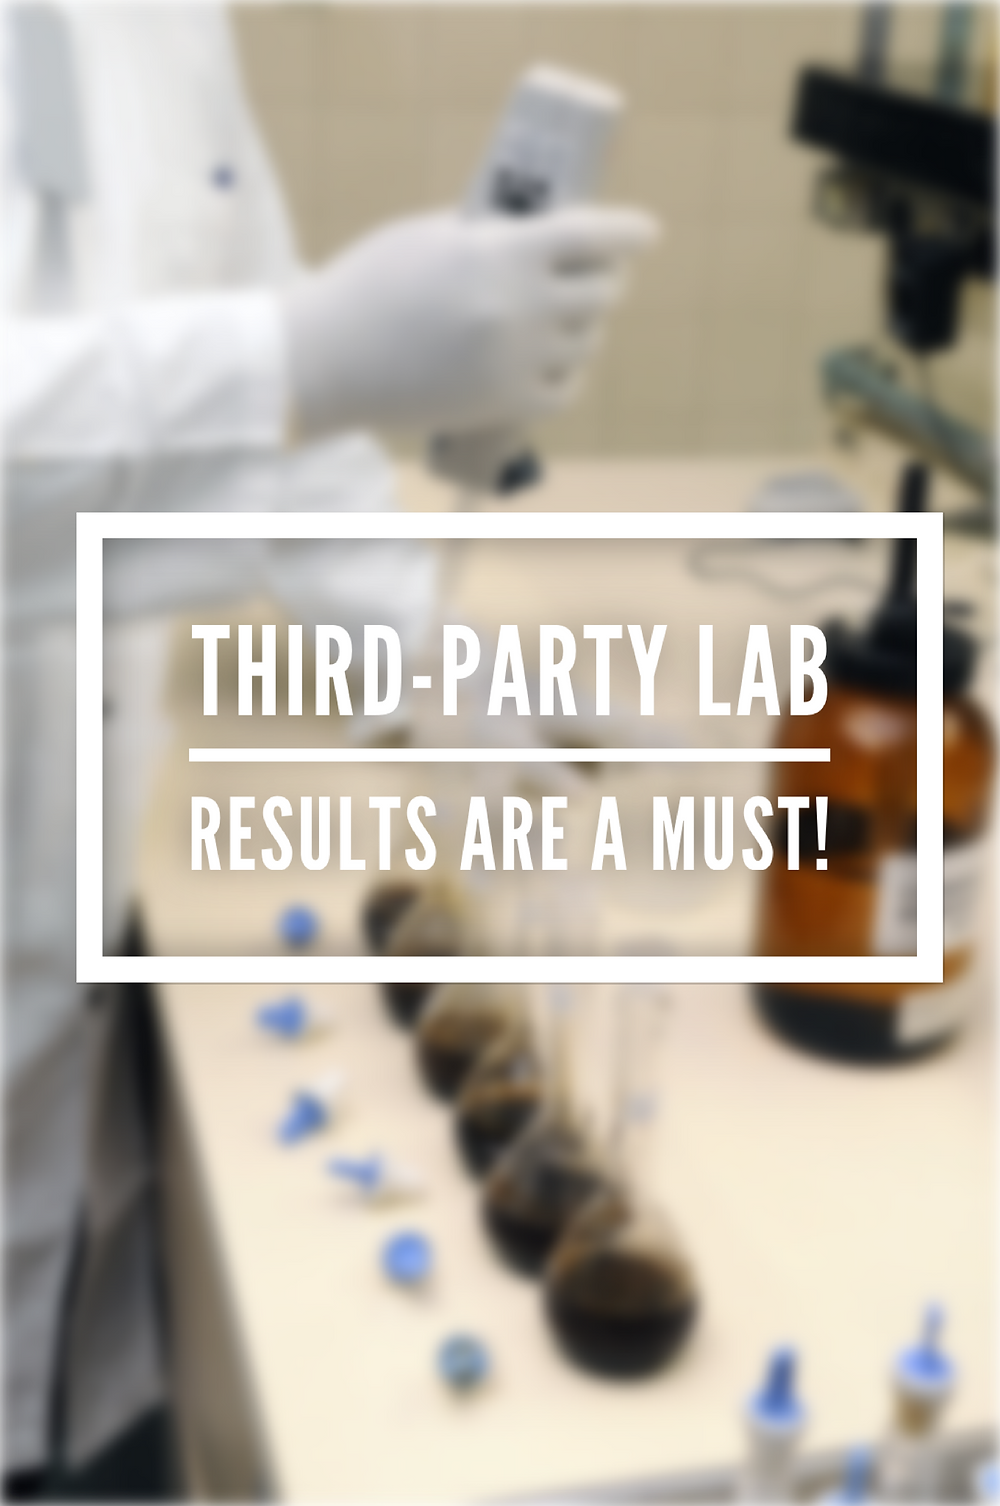 CBD Lab results. CBD Myths. Summit Oils CBD. Summit Oils Lab Results. Third party labs. CBD results. CBD Myths. CBD Facts. CBD safety.  Safe CBD.